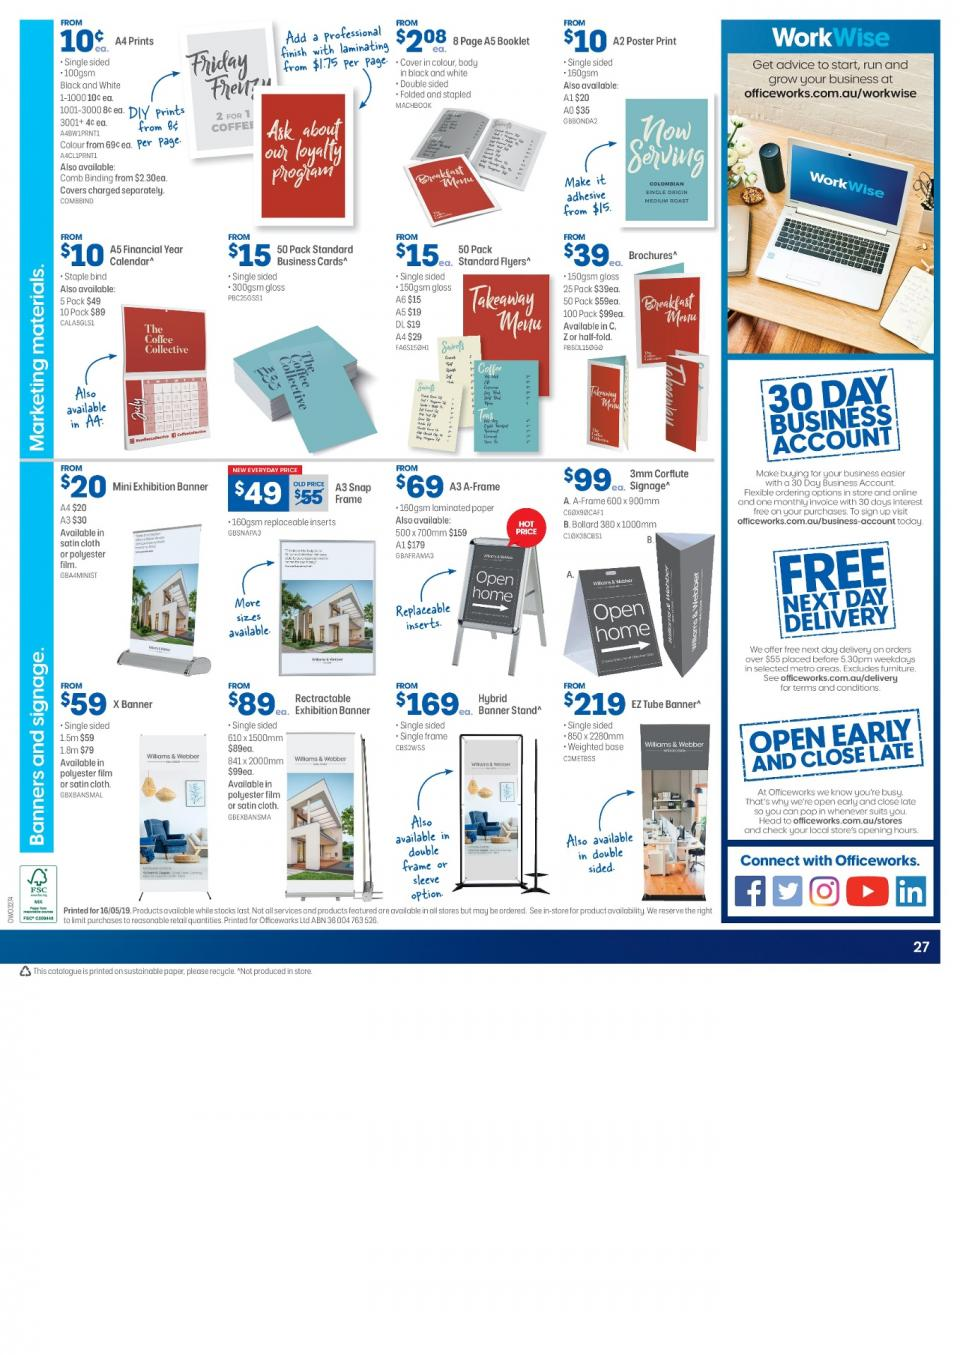 Officeworks Catalogue Jun 2019 Page 27 - Www imagez co